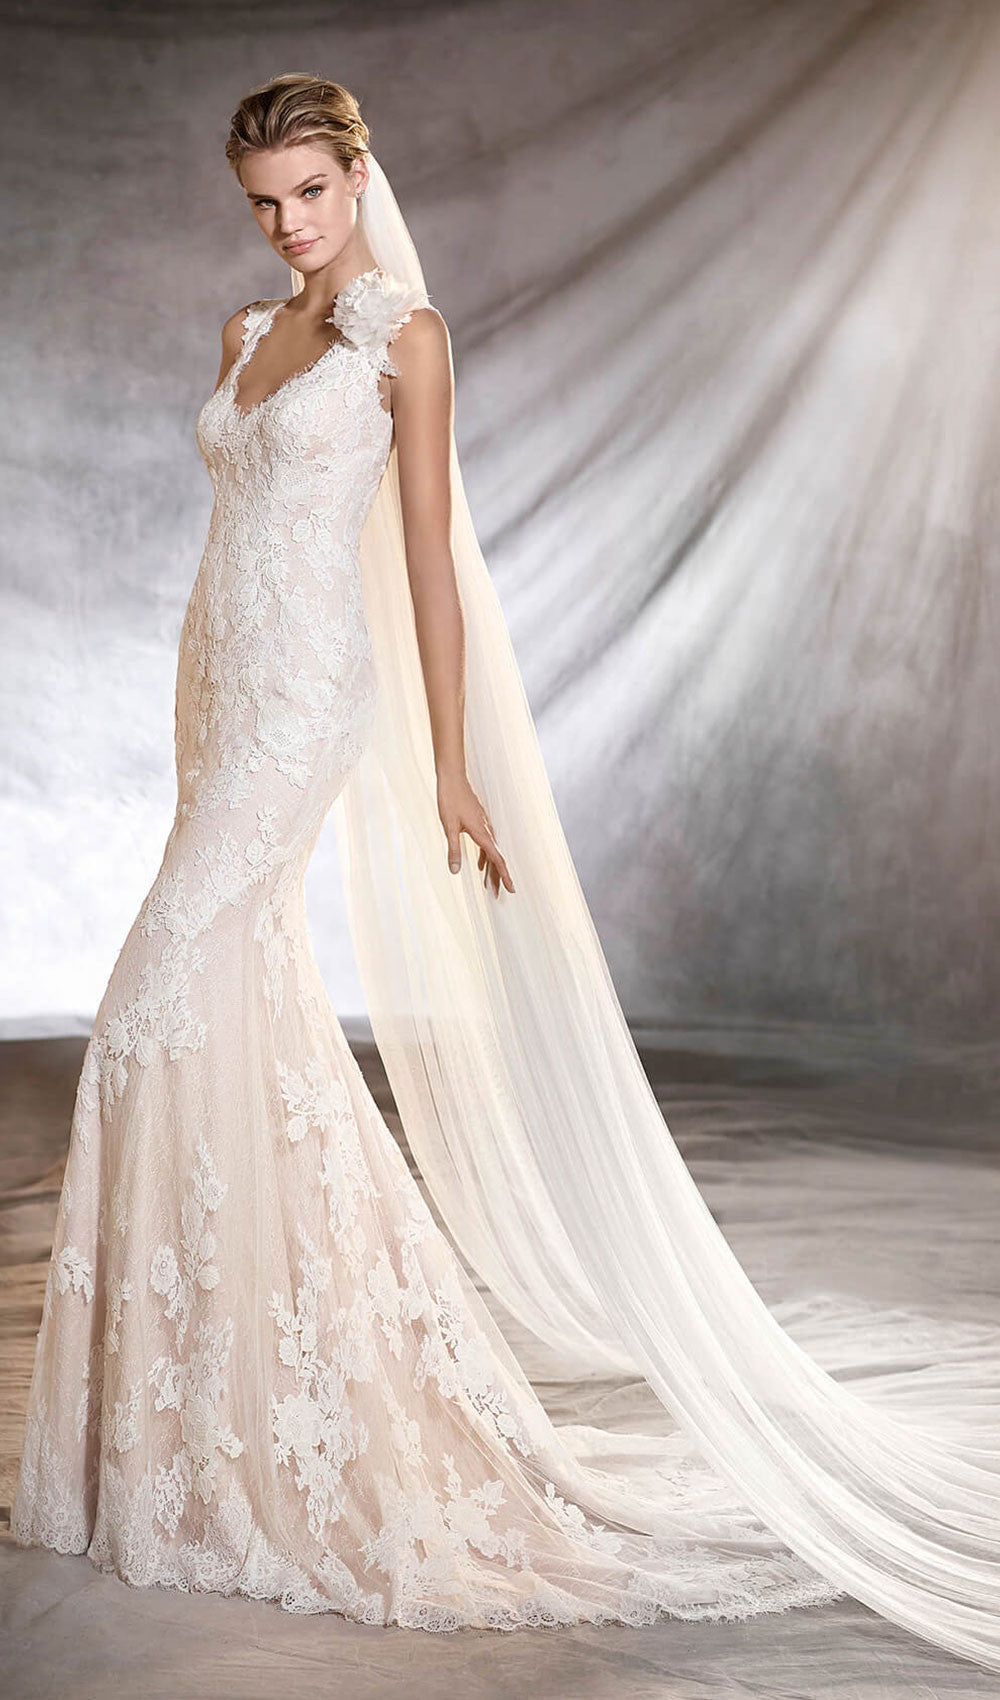 Pronovias - STYLE ORMA| Schaffer's Bridal in Des Moines, Iowa and in Scottsdale, Arizona